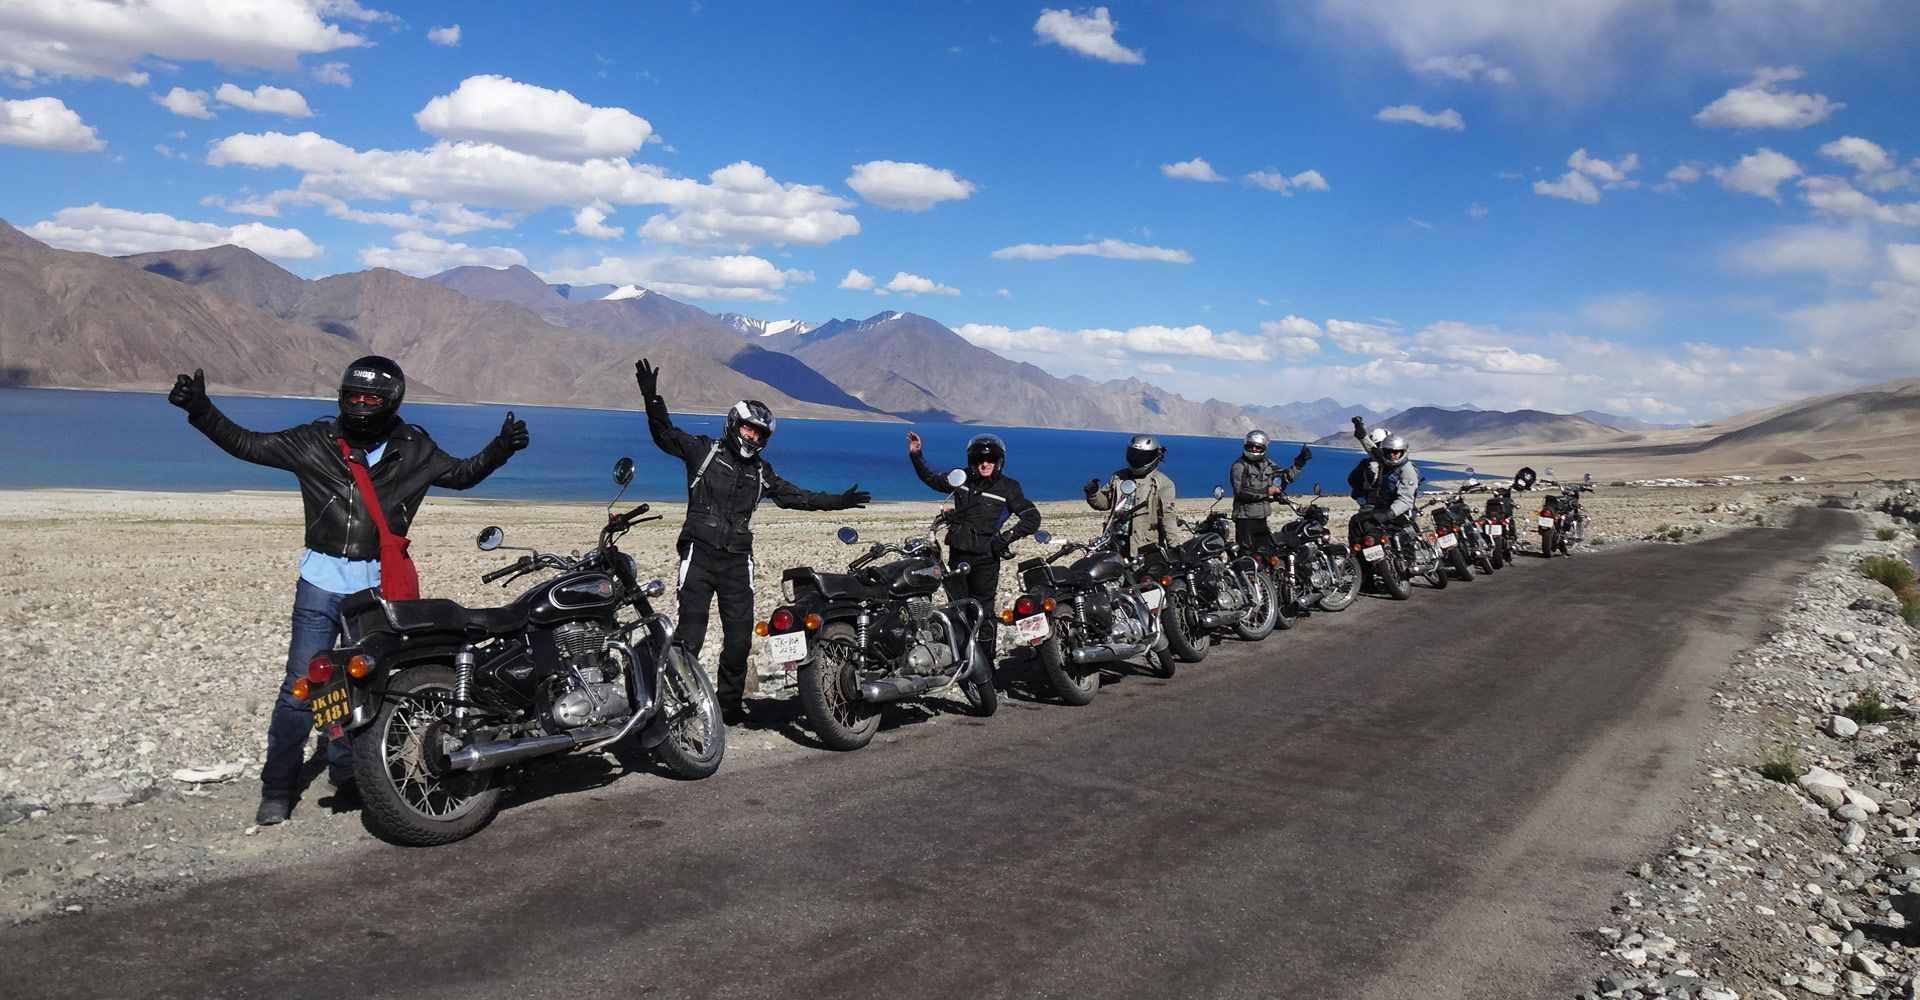 Get Complete Details On Best Bike Tour In India 2019 Check Out The List Of Top Ranked Touring Bikes Prices Photos Adventure Motorcycling Bike Tour India Tour